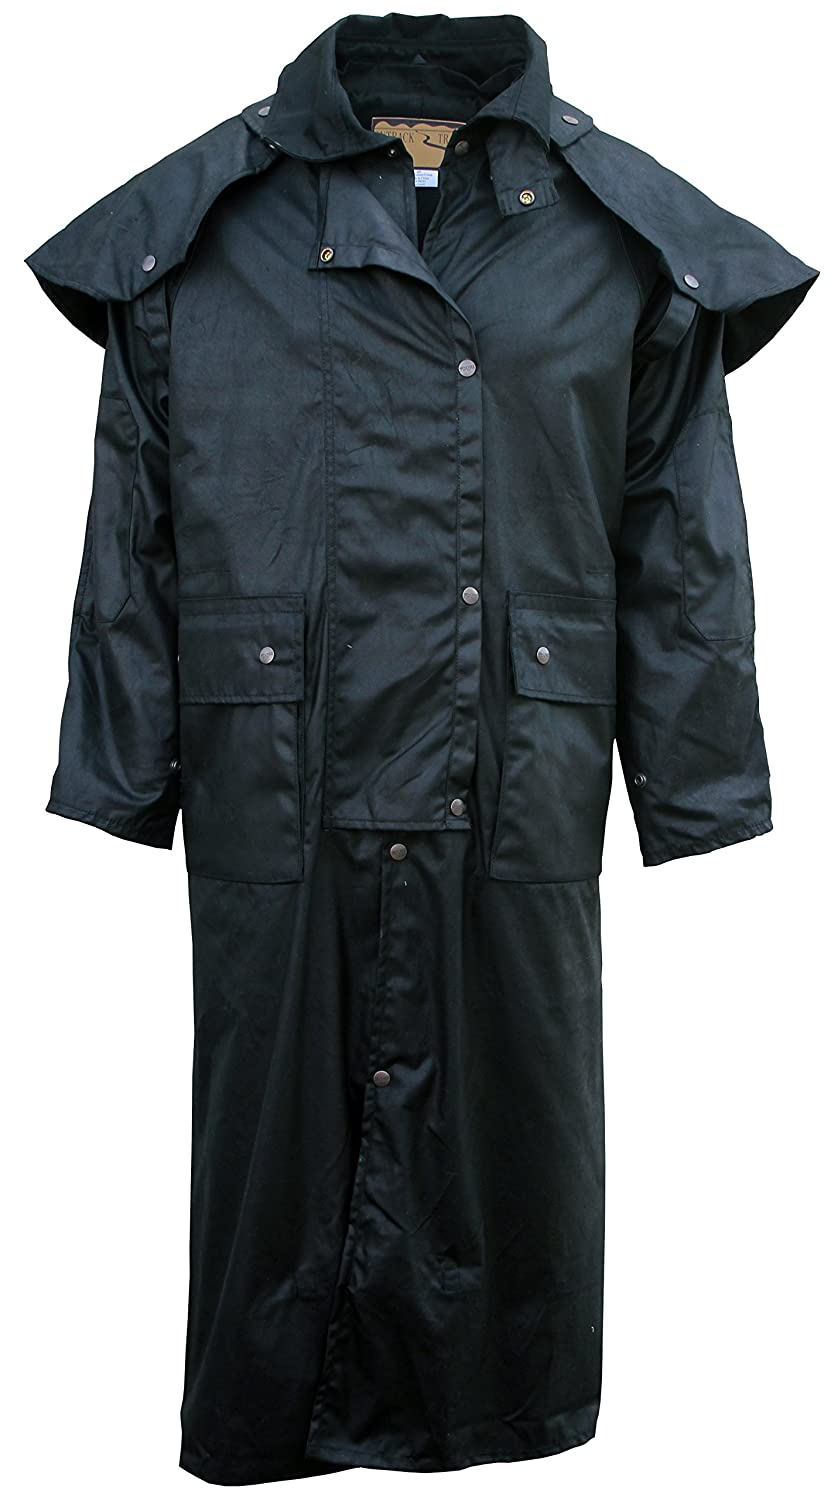 Oilcloth Waterproof Drover Duster Long Coat Outback Trail by Foxfire Oilskin